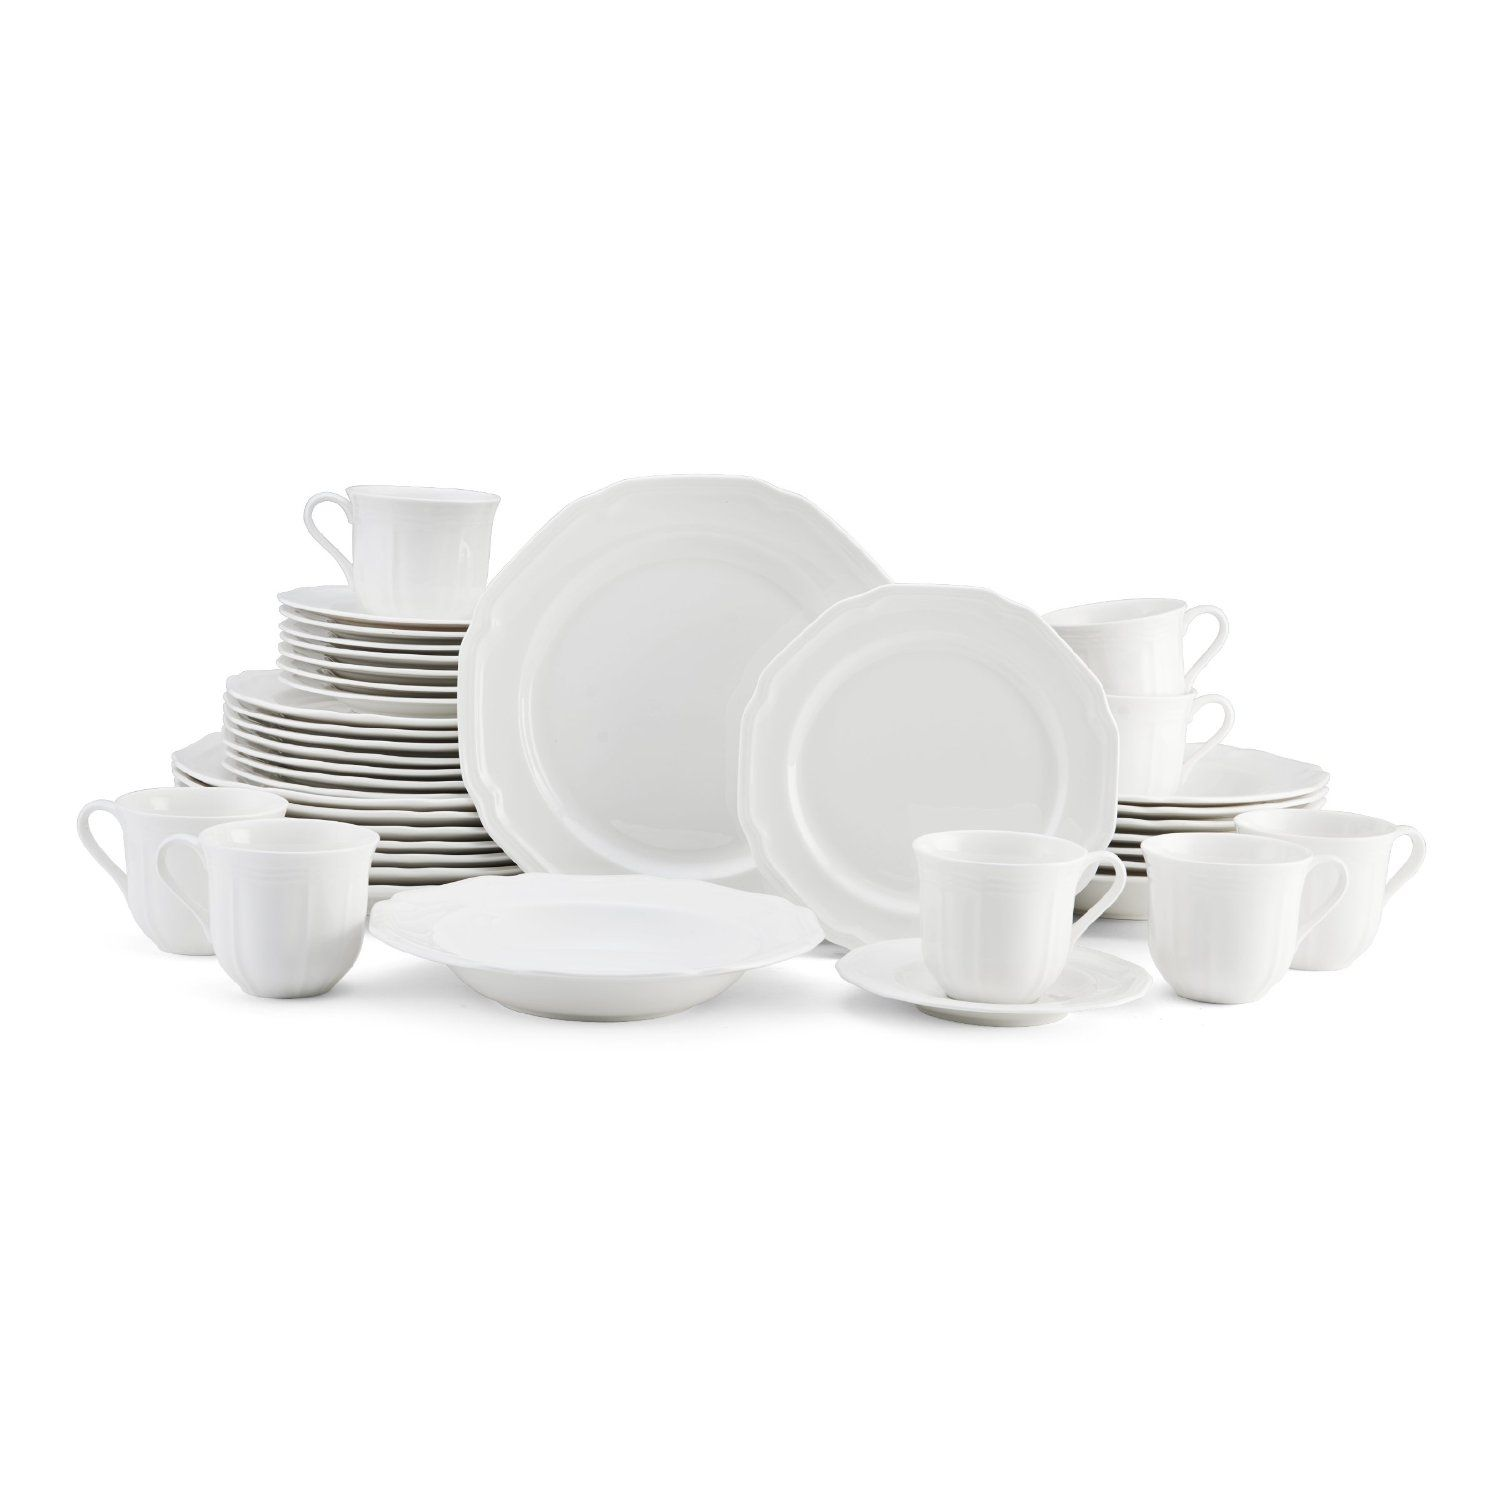 Dinnerware Set Service For 8 White Porcelain Kitchen Plates Bowls Cups 40 Piece  sc 1 st  Pinterest : white dinnerware sets for 8 - pezcame.com